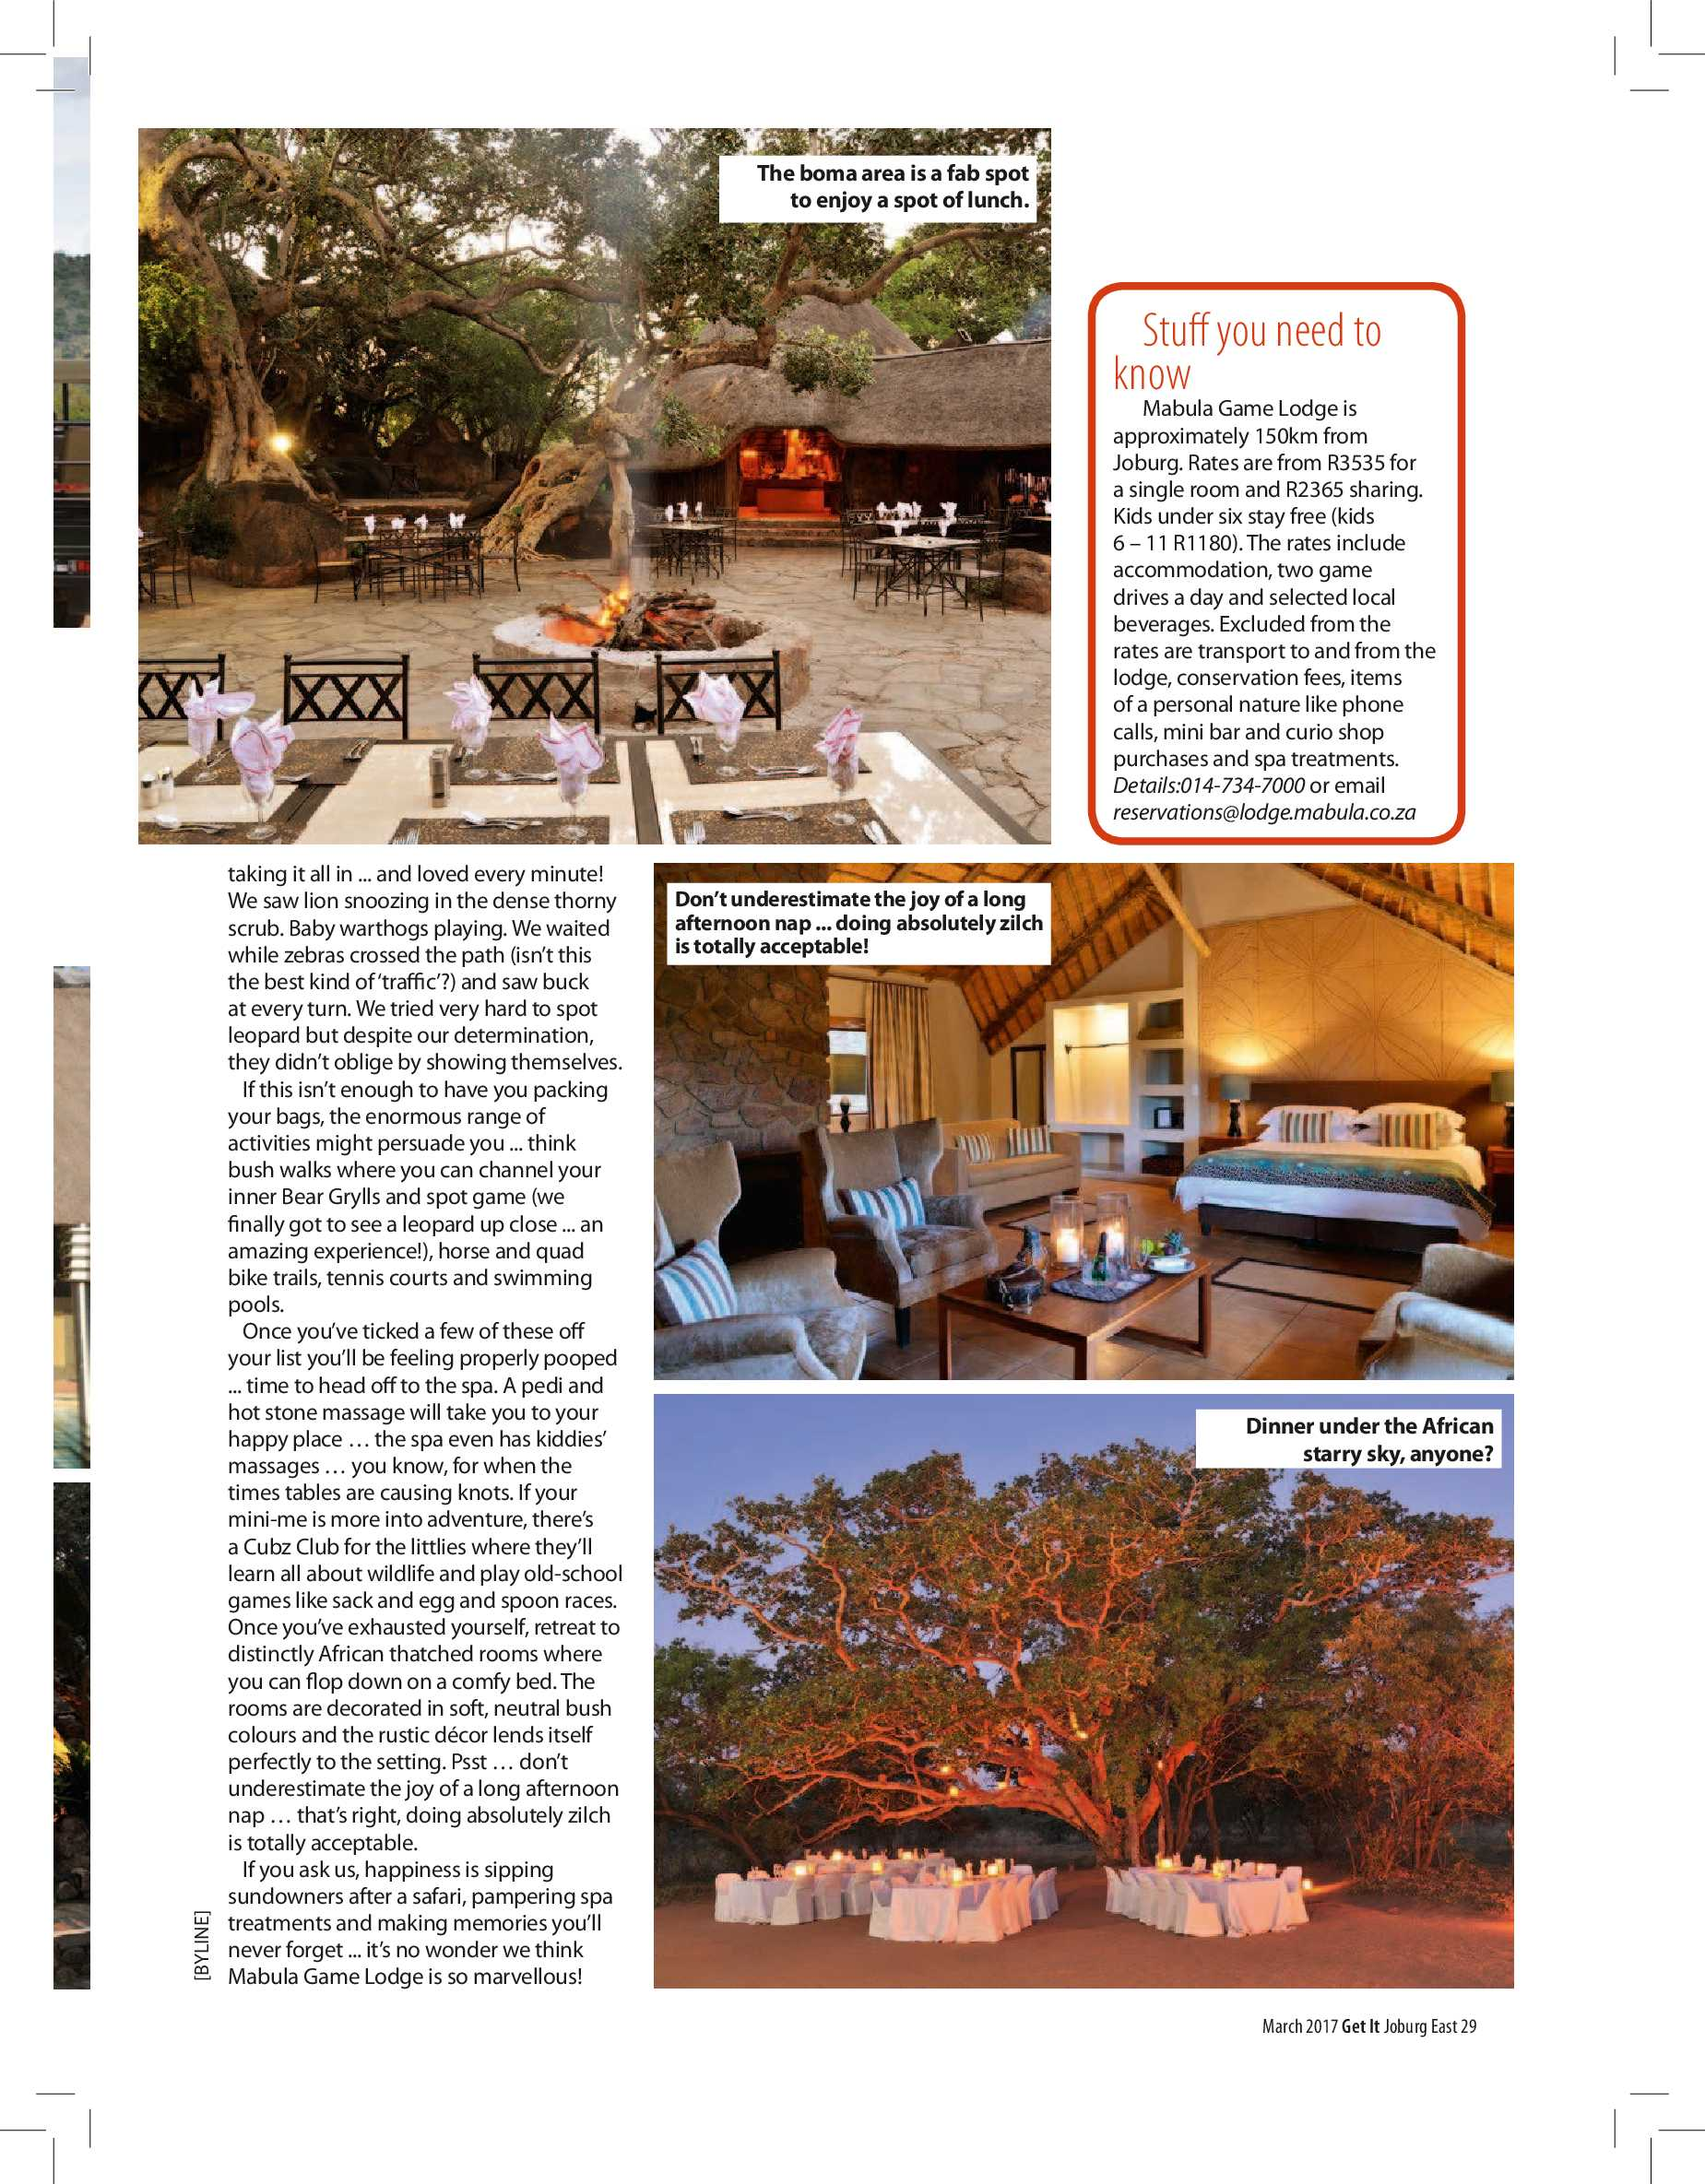 get-east-march-2017-epapers-page-29